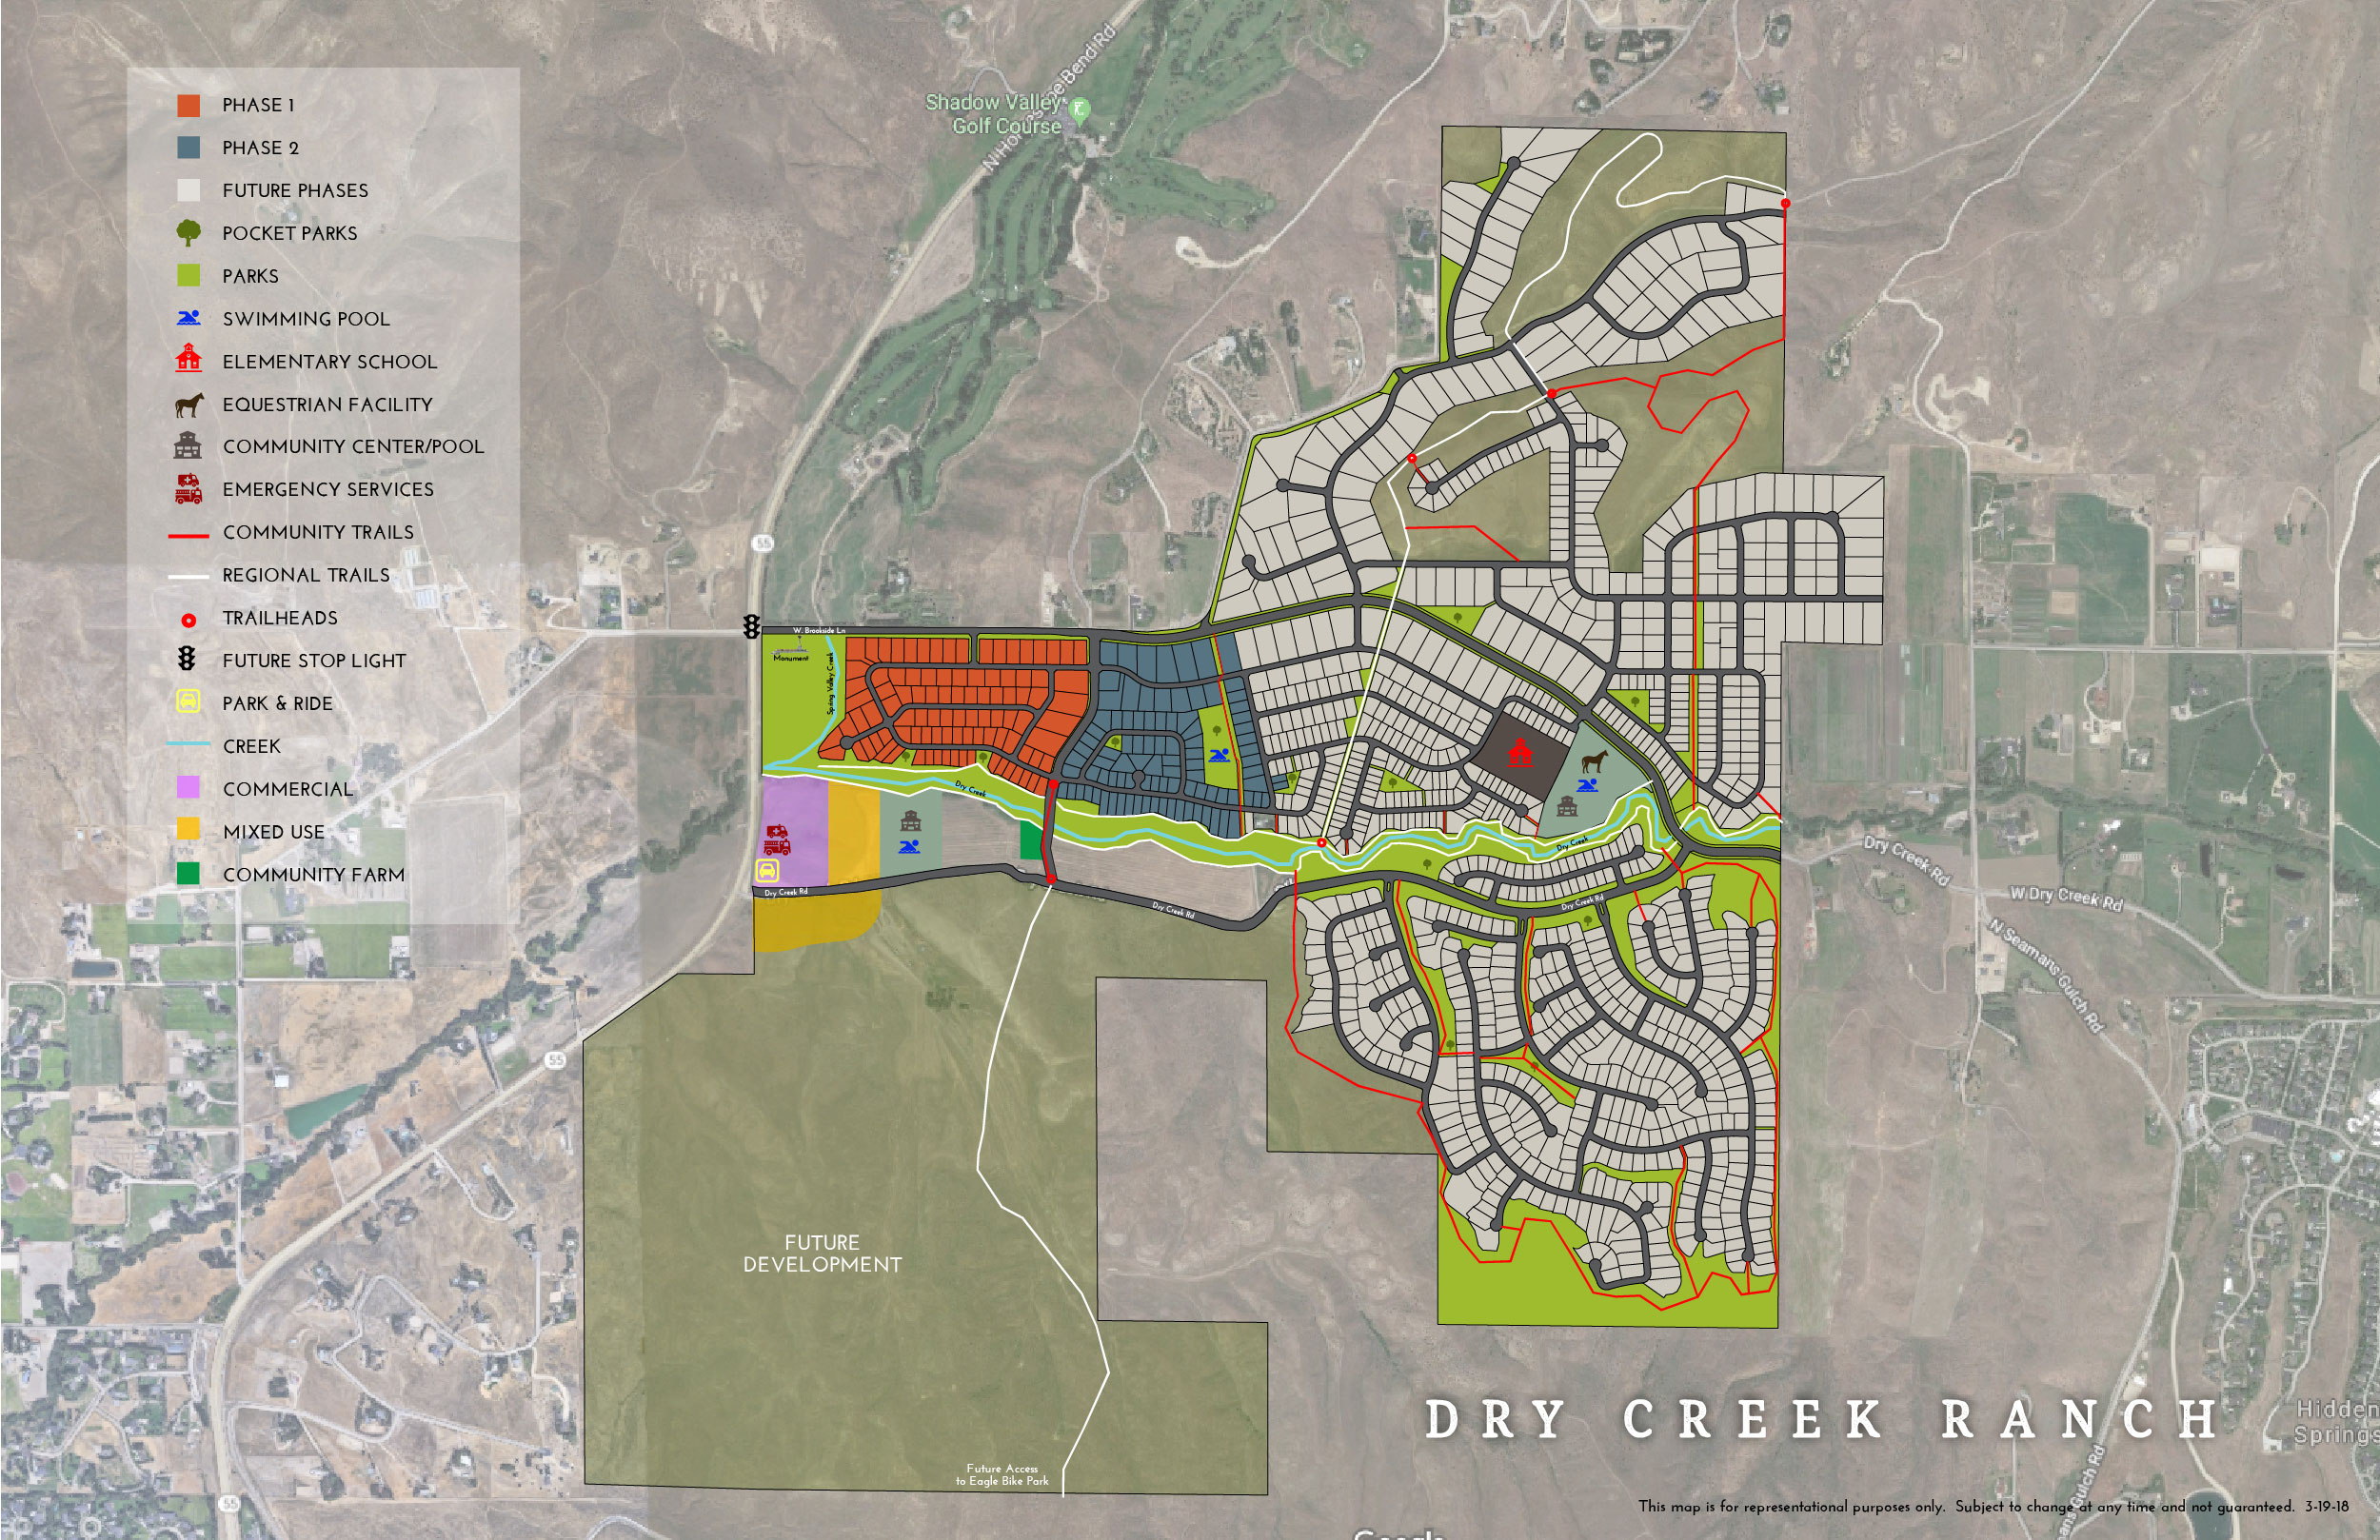 Dry Creek Ranch Boise Idaho